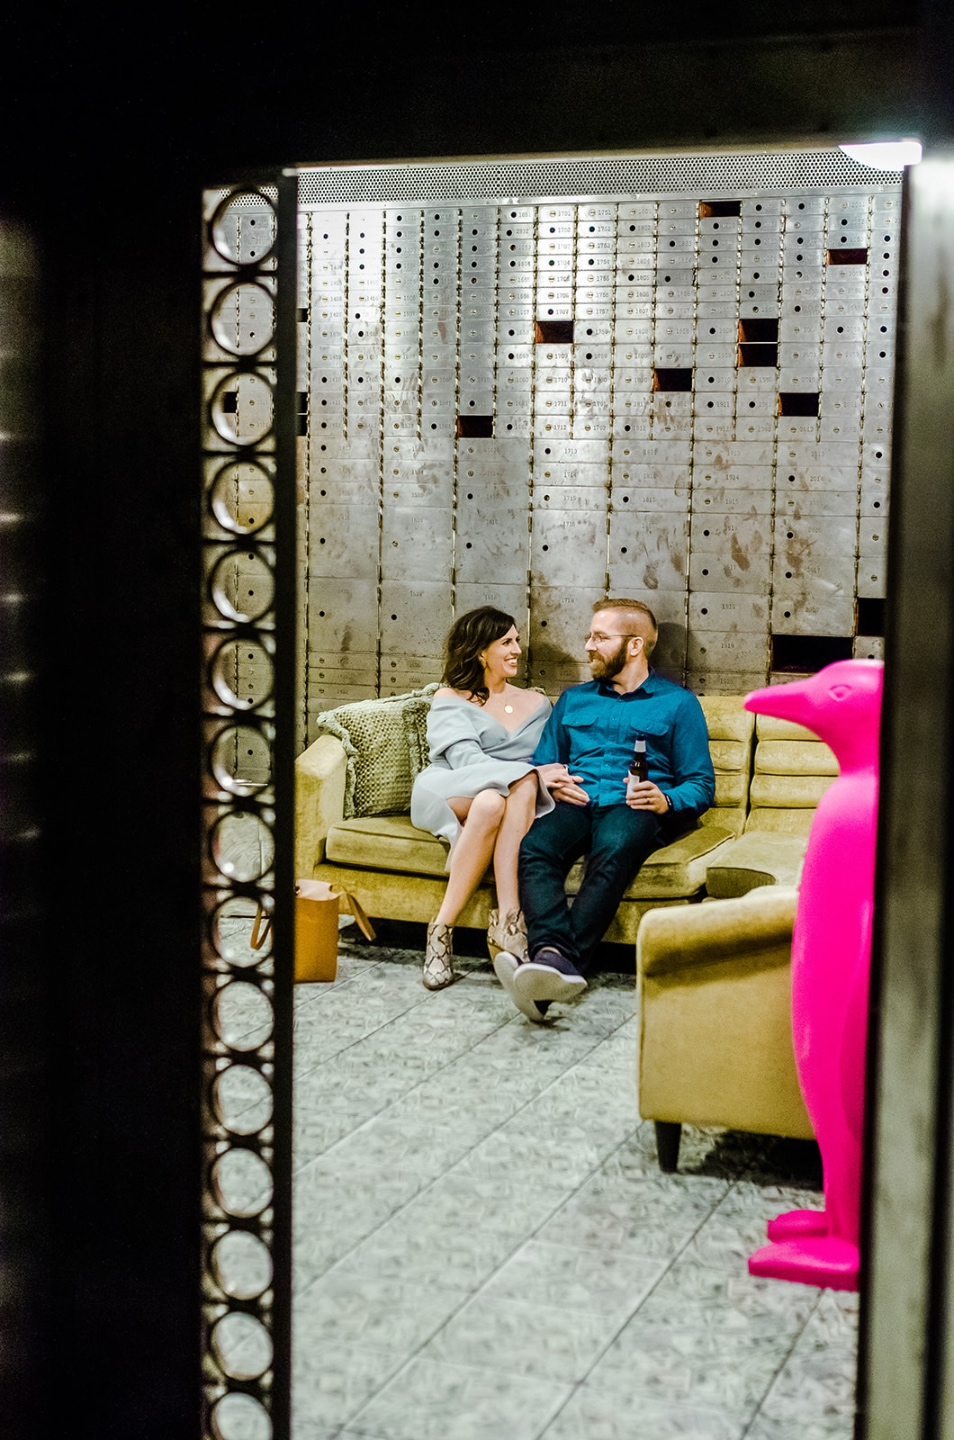 23 Awesome Things To Do in Durham - I'm Fixin' To - @imfixintoblog | Things to do in Durham by popular NC travel blog, I'm Fixin' To: image of a man and woman sitting together in a old bank vault on a gold velvet sectional couch.